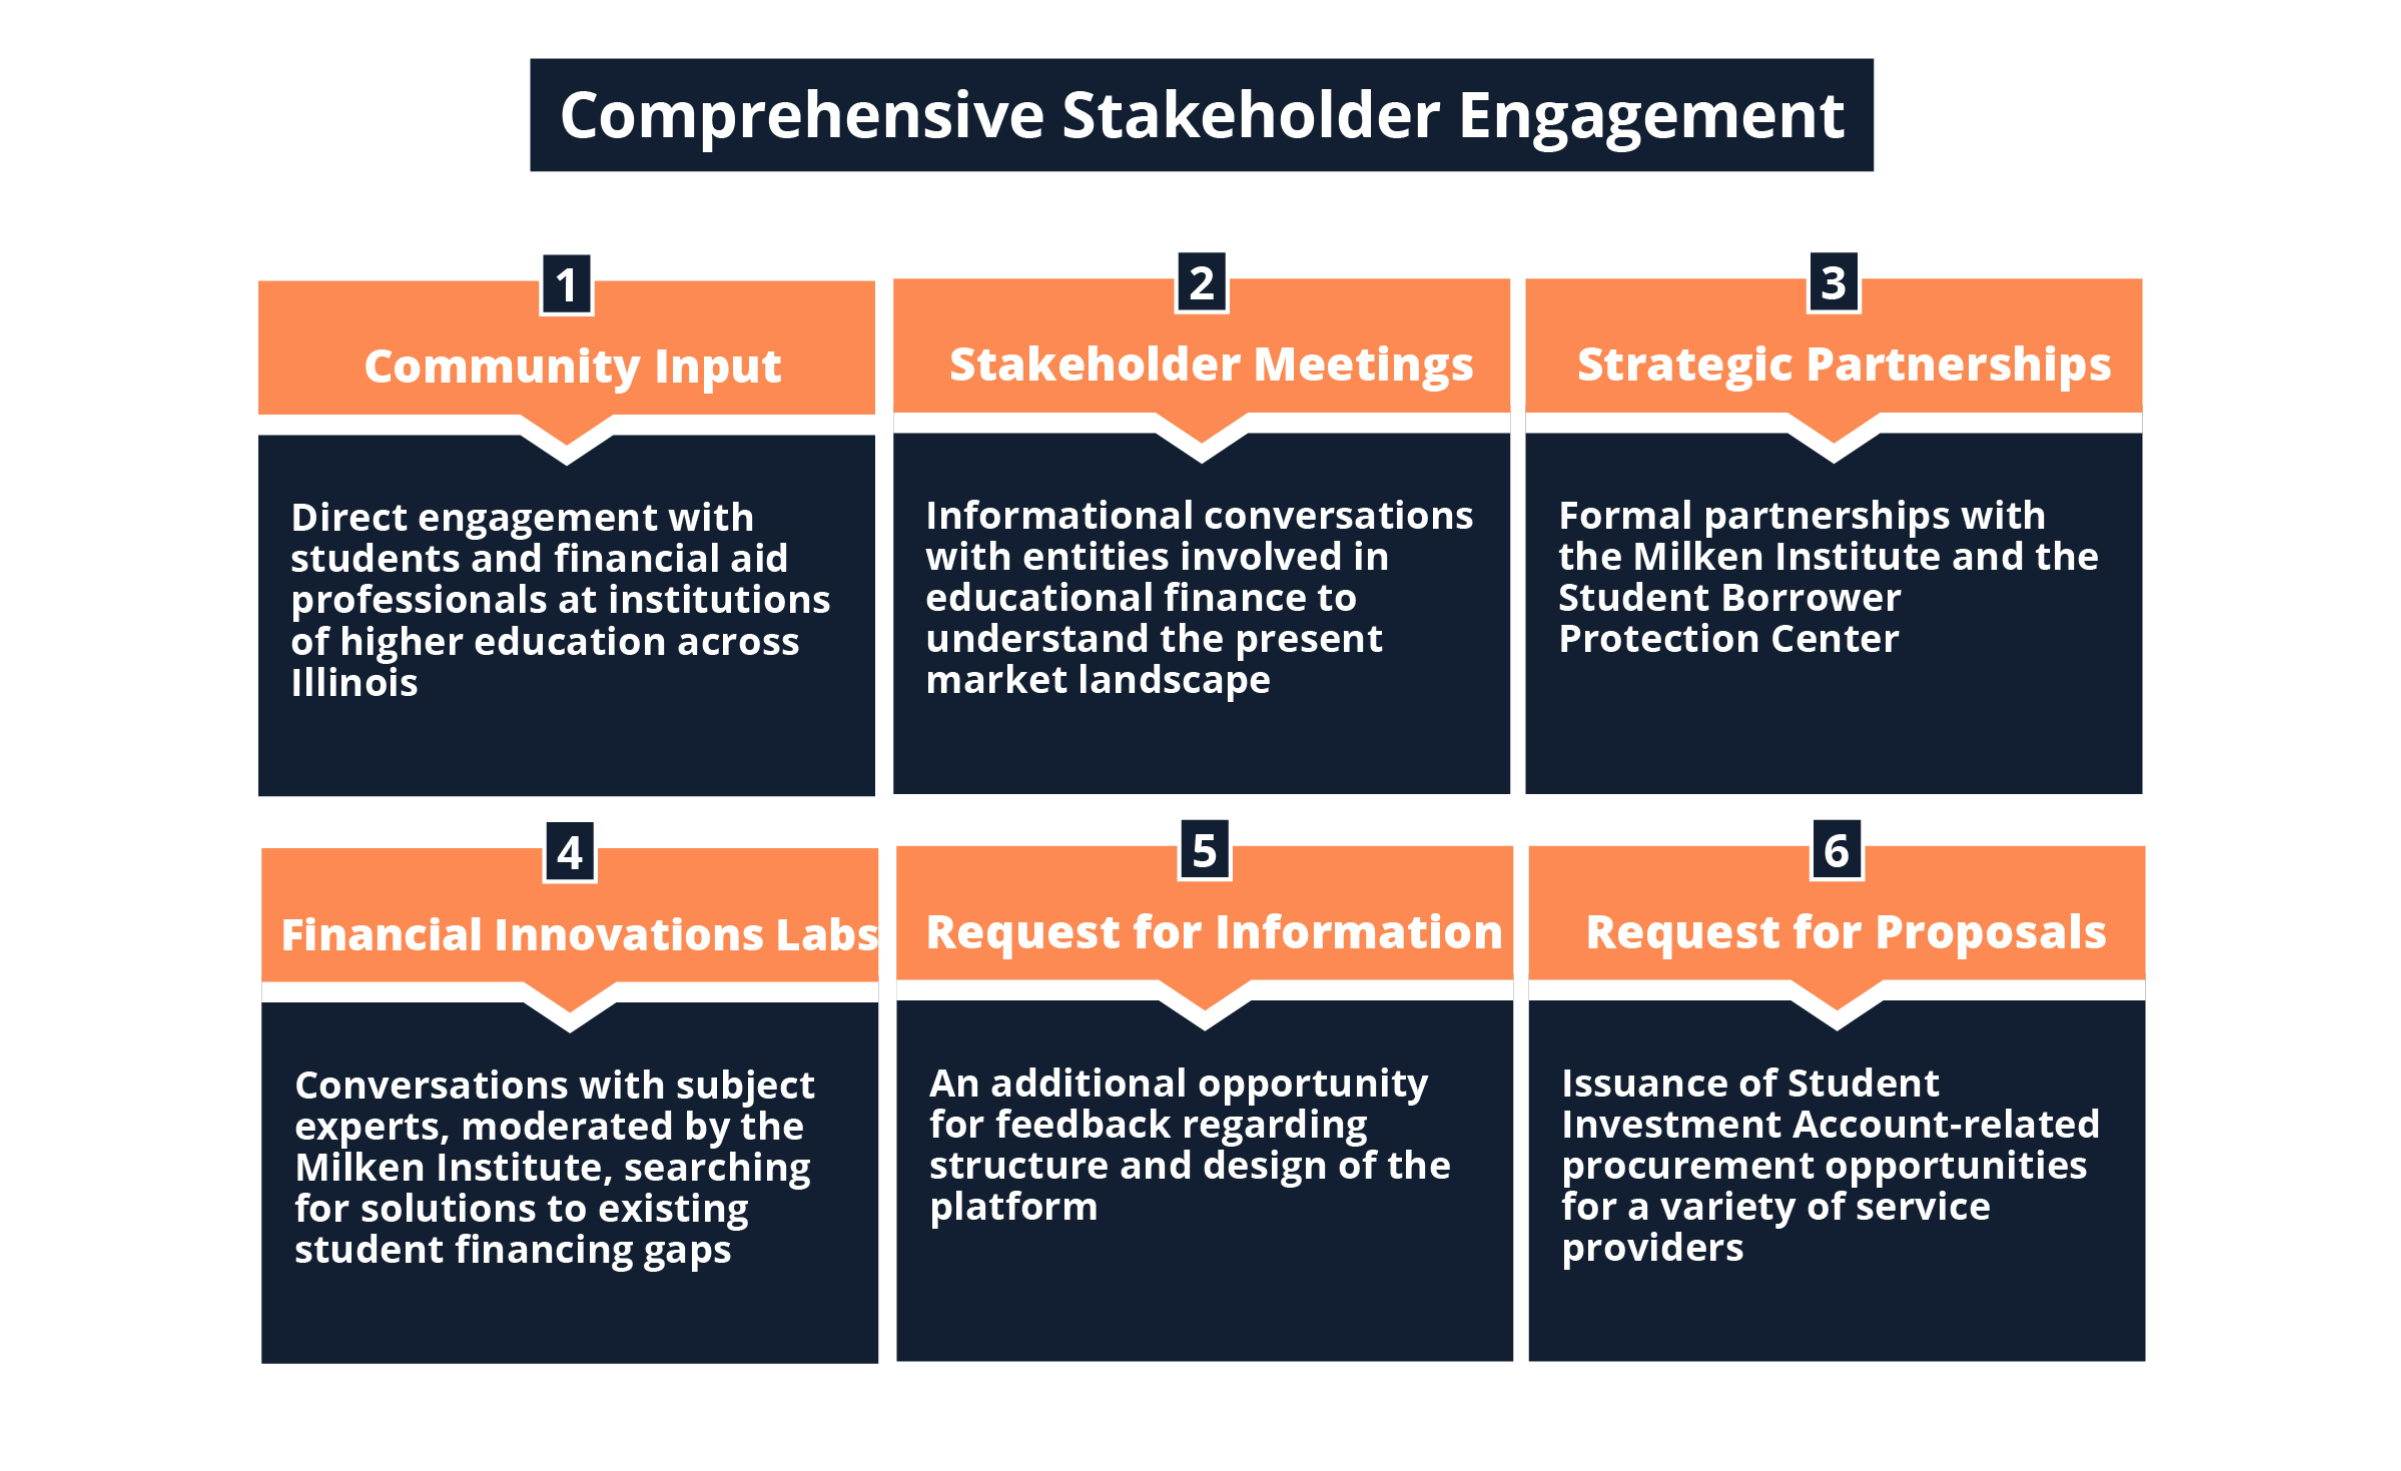 Comprehensive Stakeholder Engagement